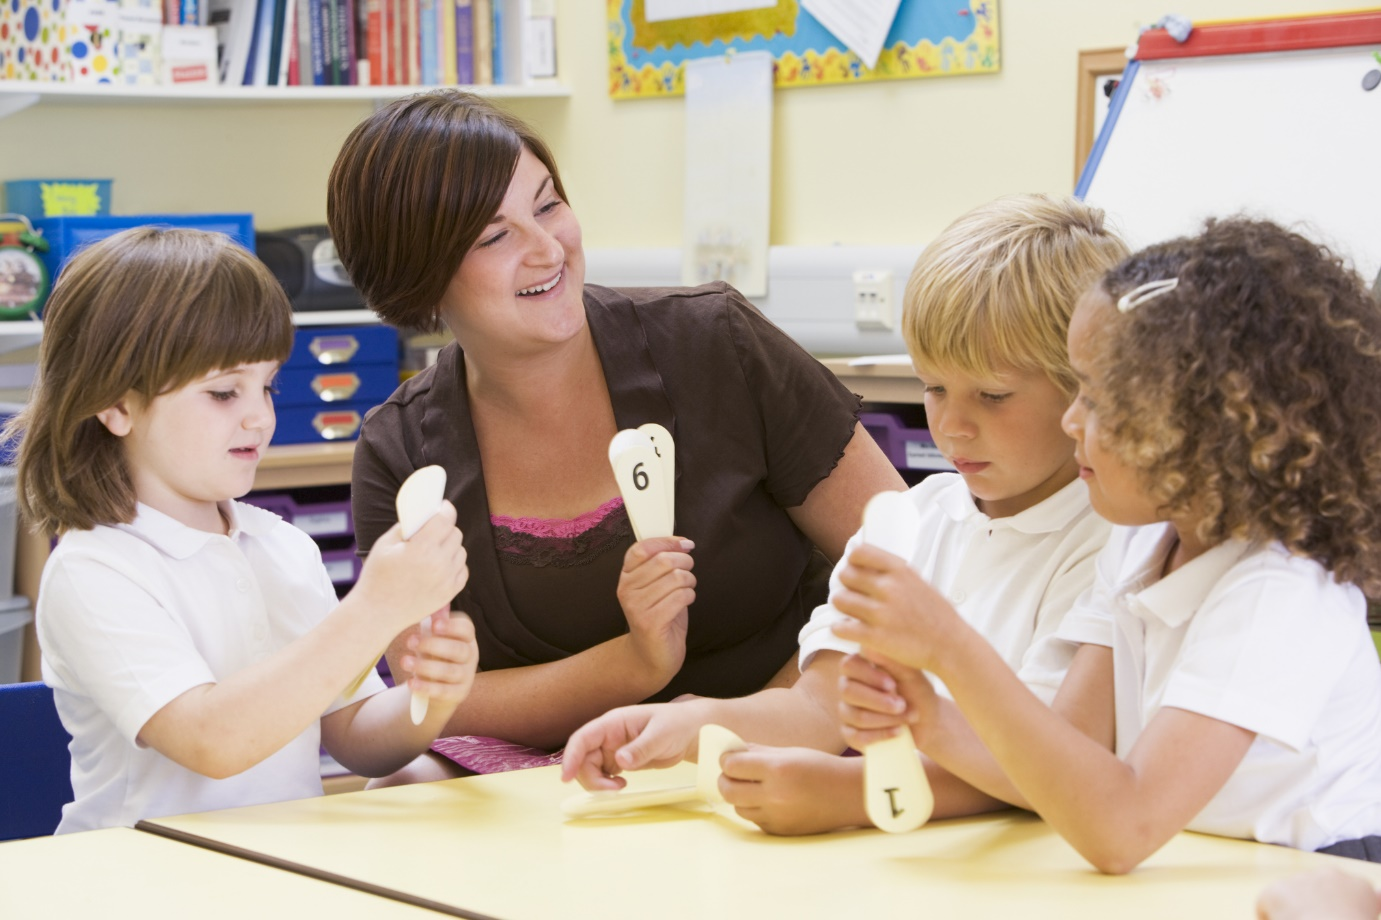 Female teacher aide with young students playing a game.